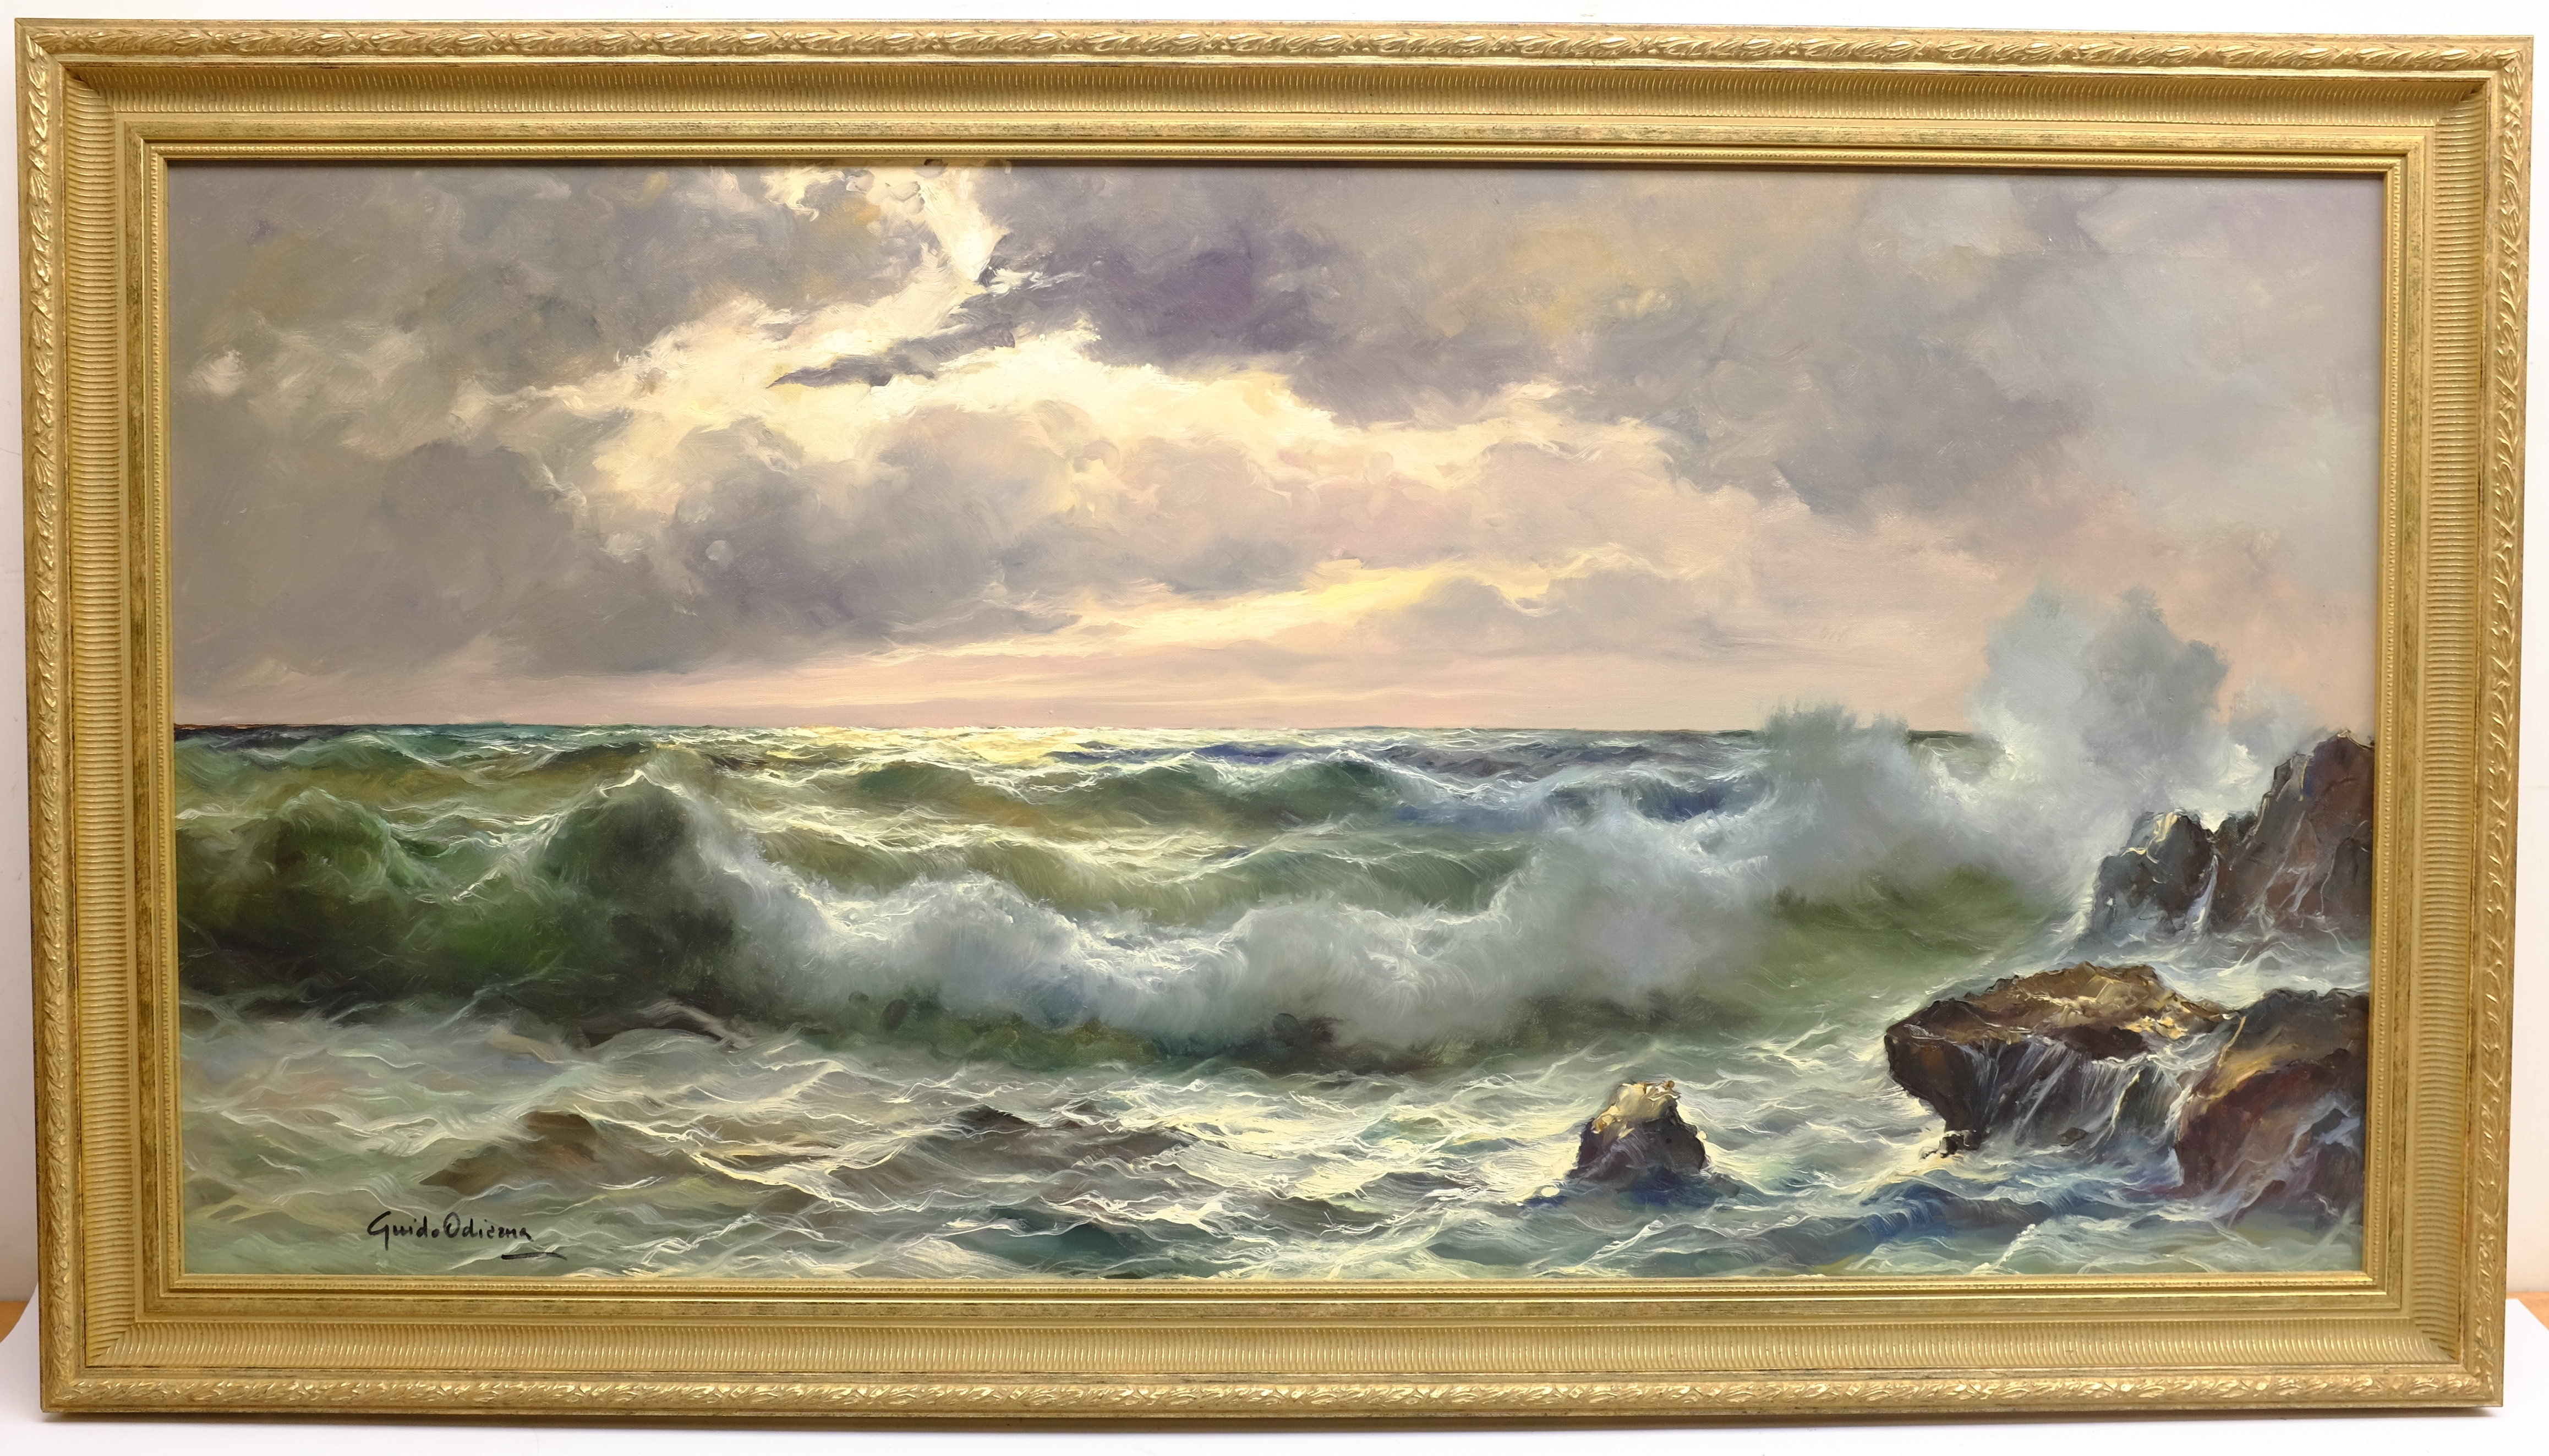 Guido Odierna (Italian 1913-1991): Waves Breaking on the Shore at Twilight, oil on canvas signed 59c - Image 4 of 4